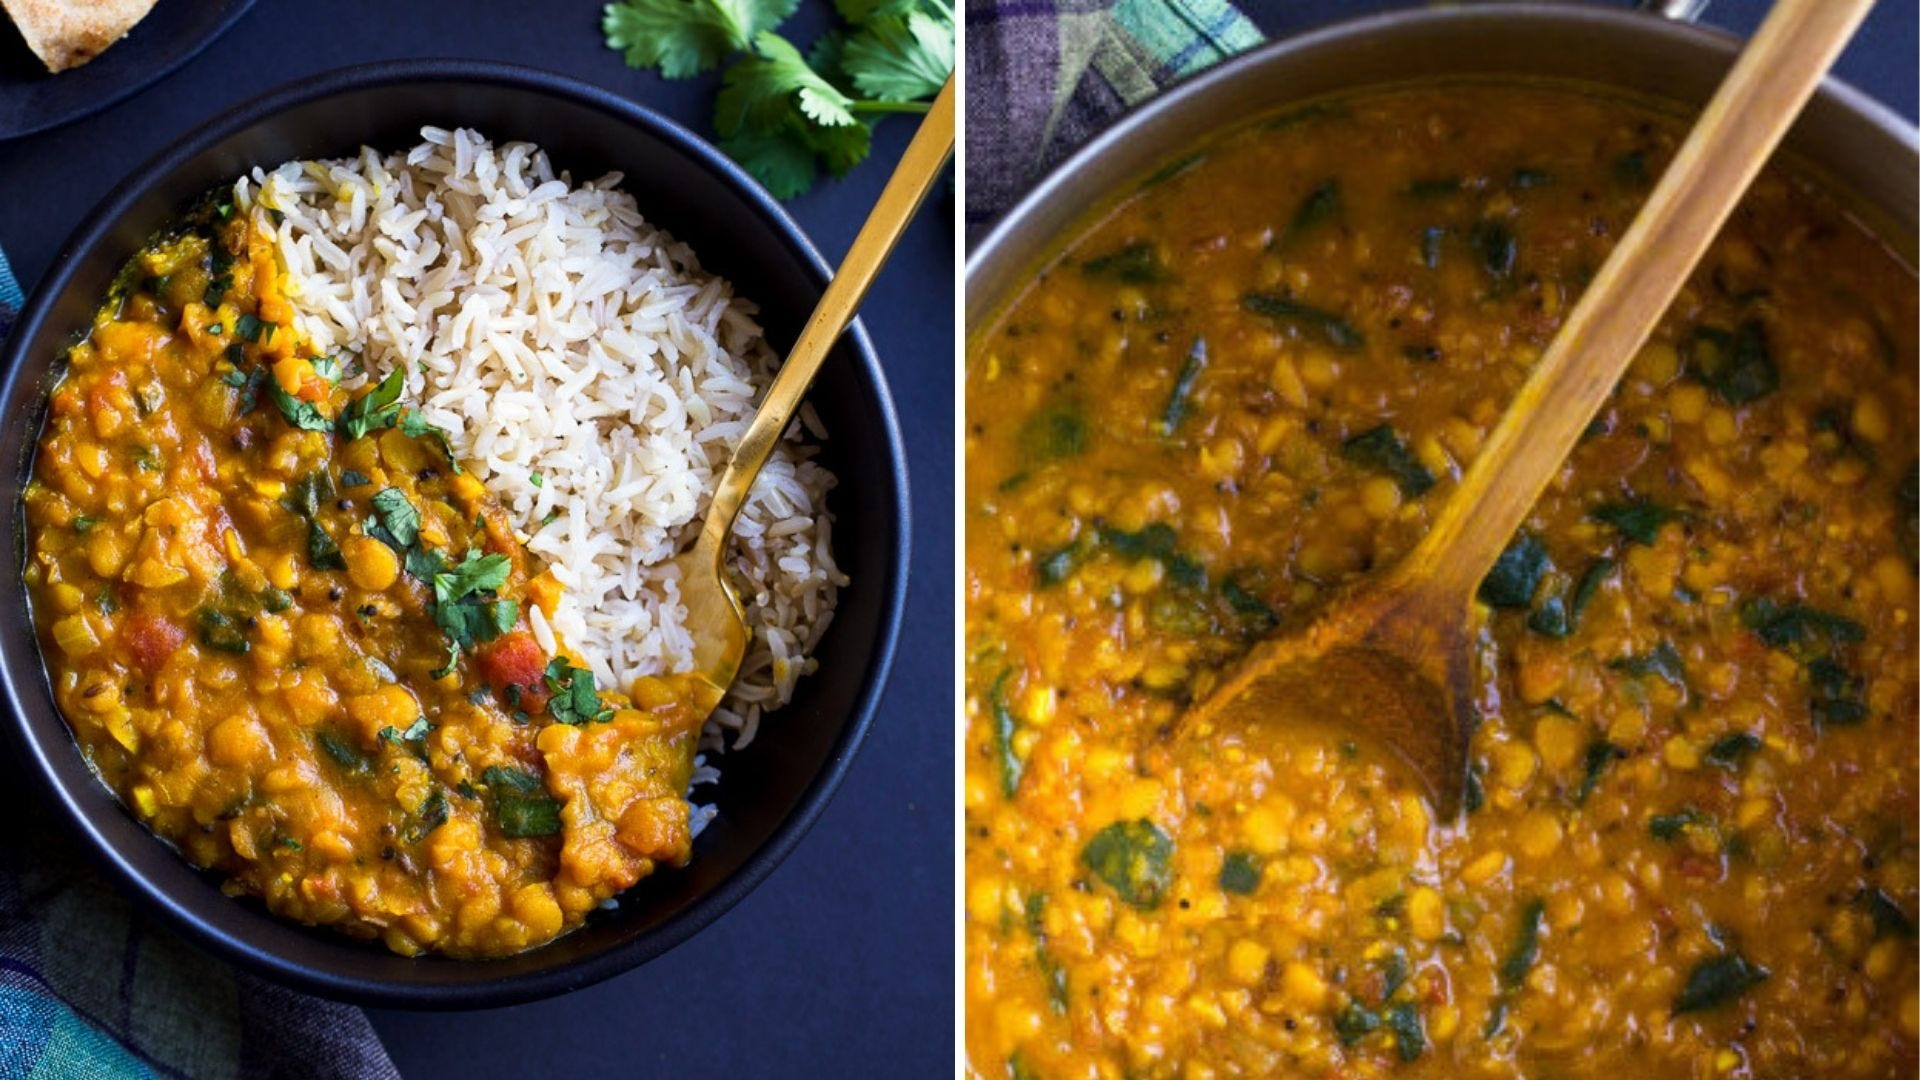 A bowl of golden dal and rice